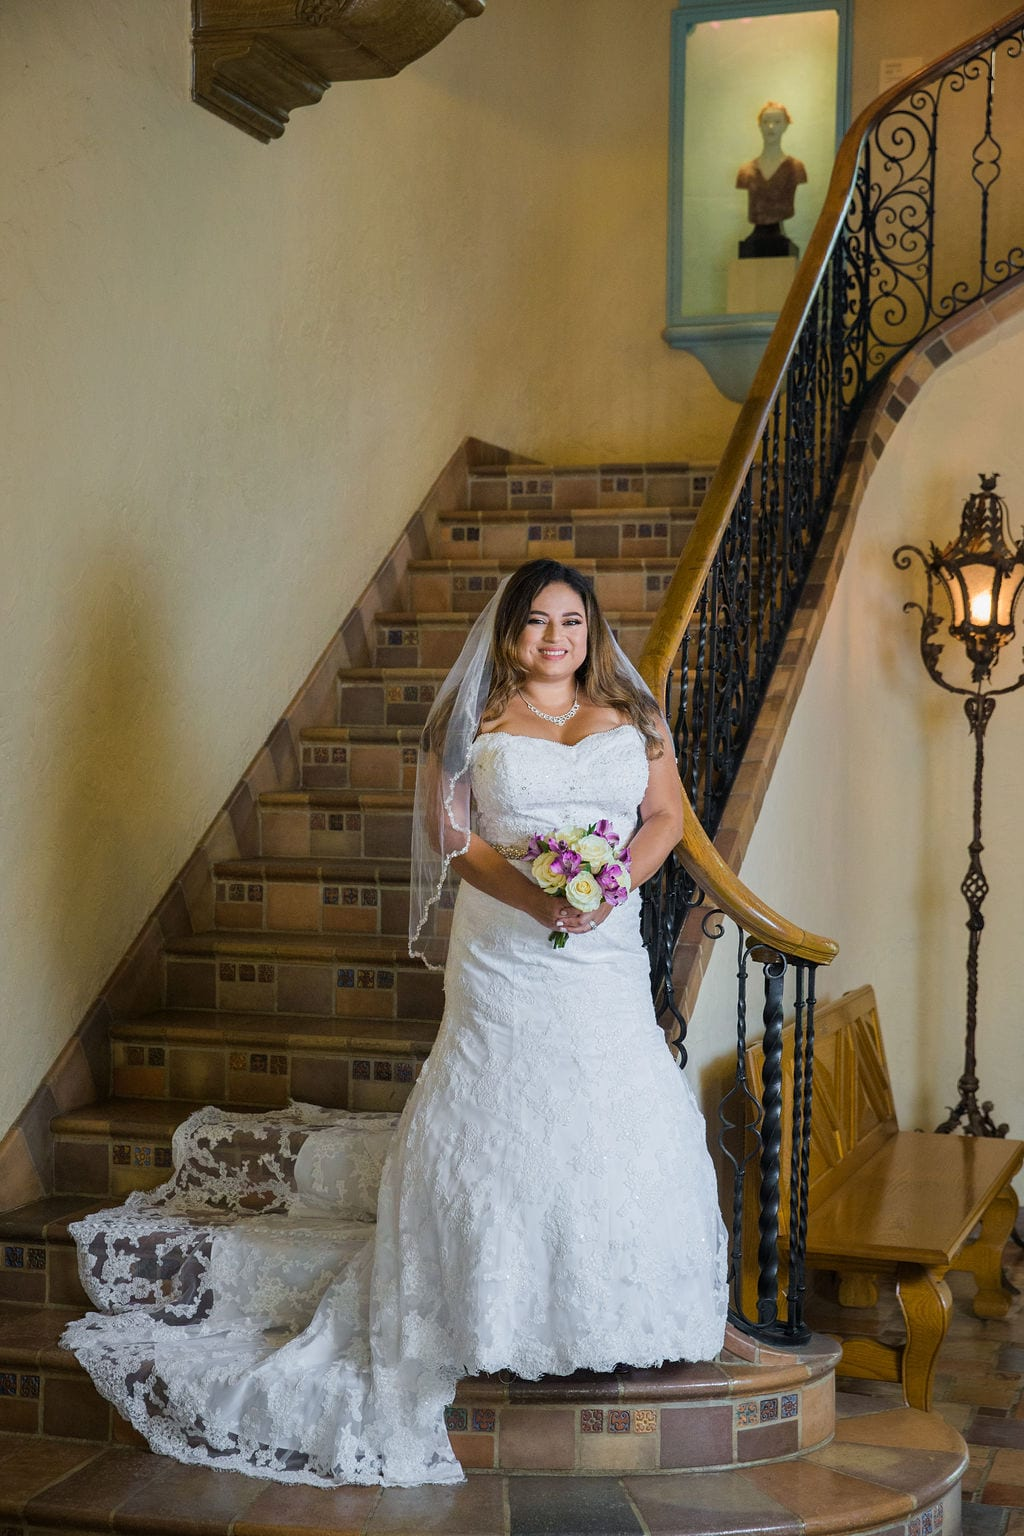 Linda's bridal session at the McNay on the stairs